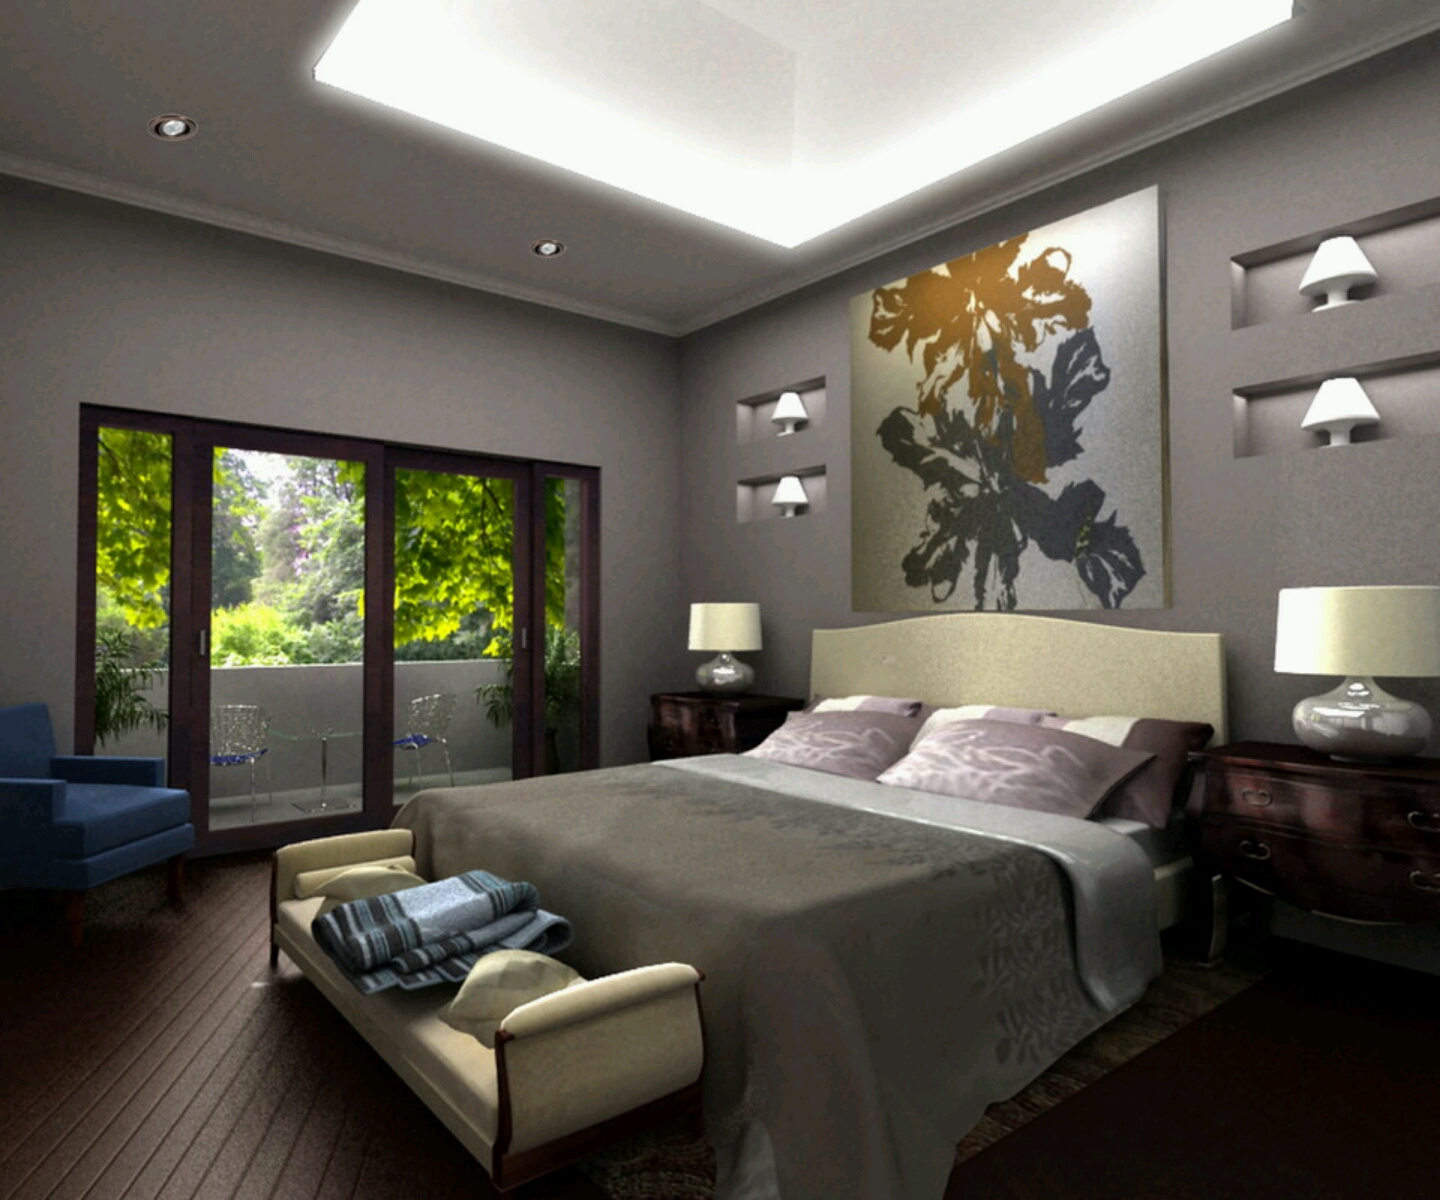 Modern Furniture: Modern bed designs beautiful bedrooms designs ideas.